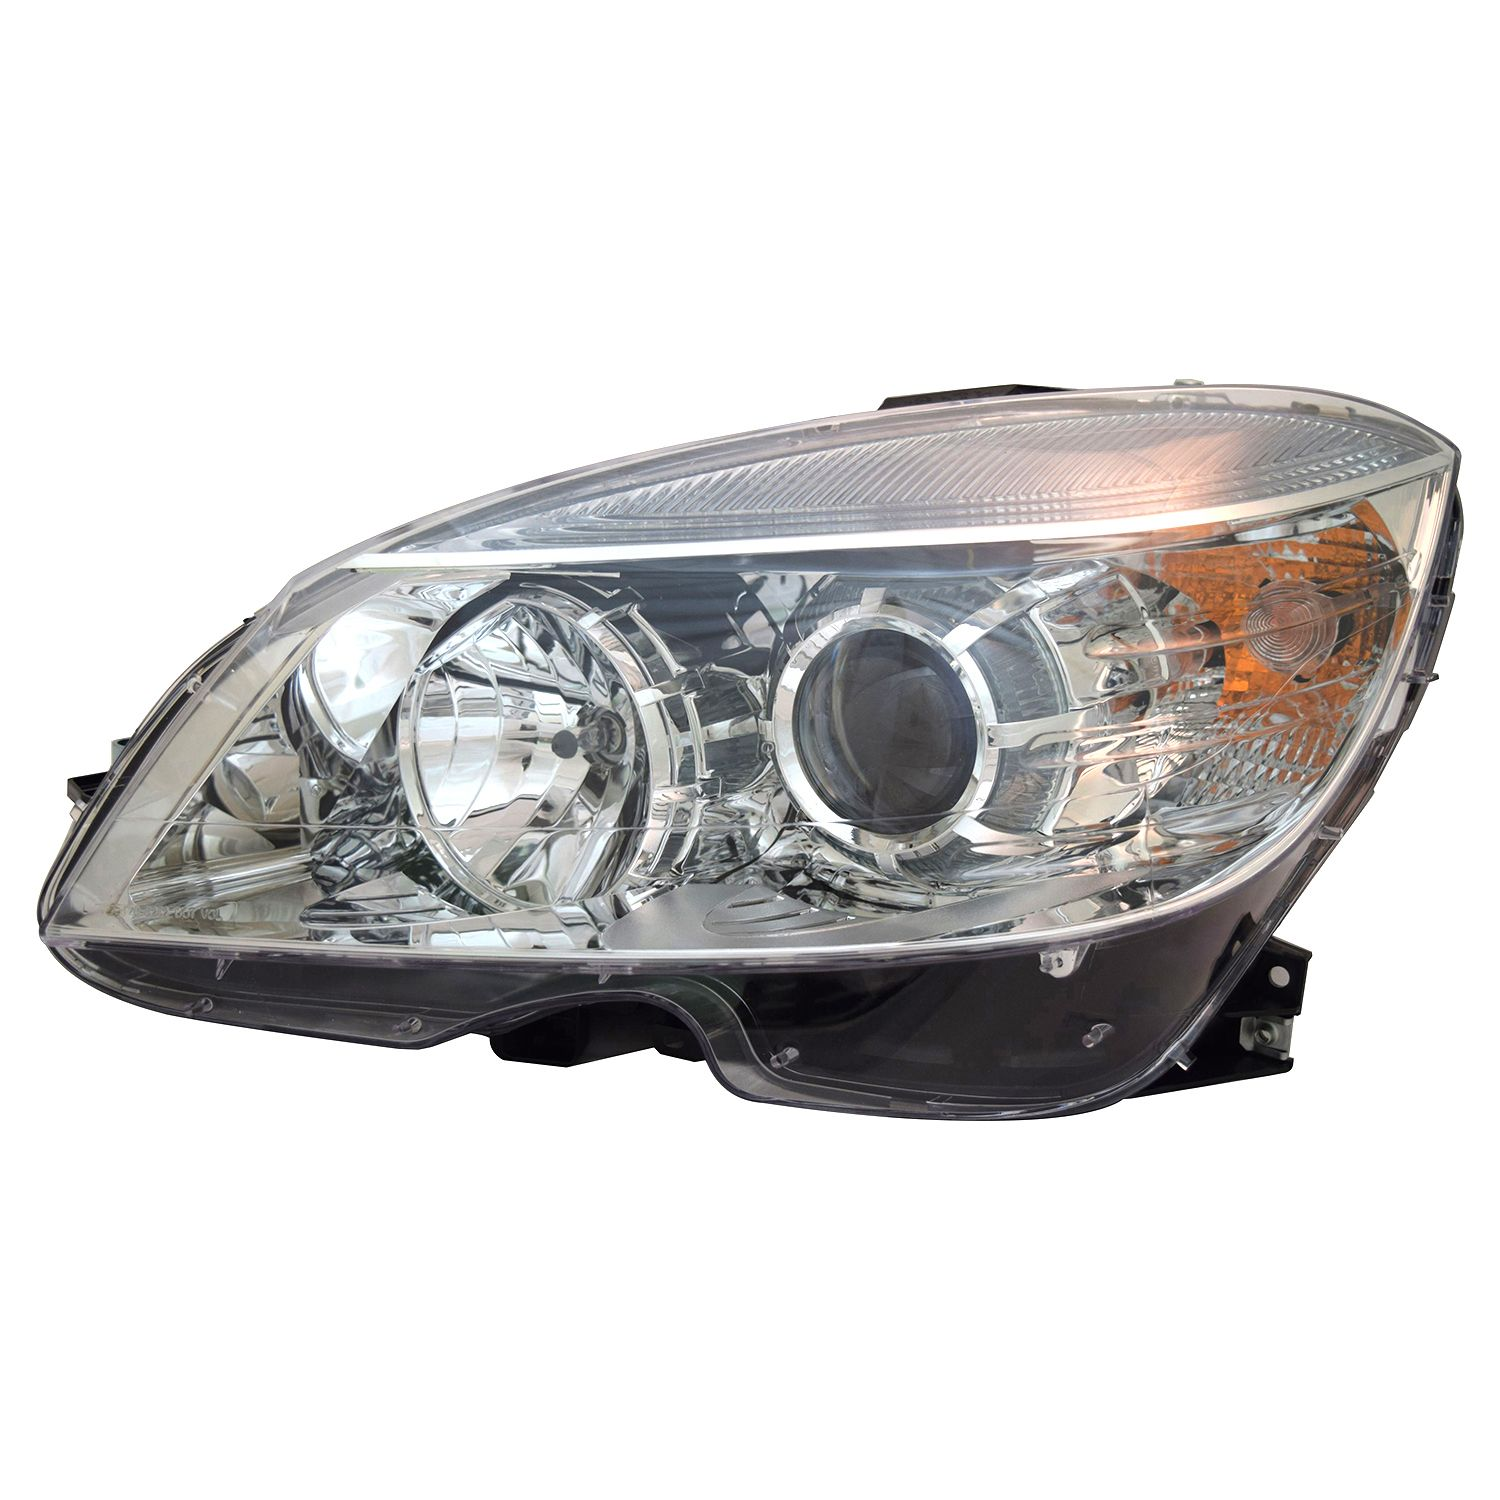 For 2007 2008 2009 2010 2011 Accent GS SE GLS SR Headlights Headlamps Left+Right